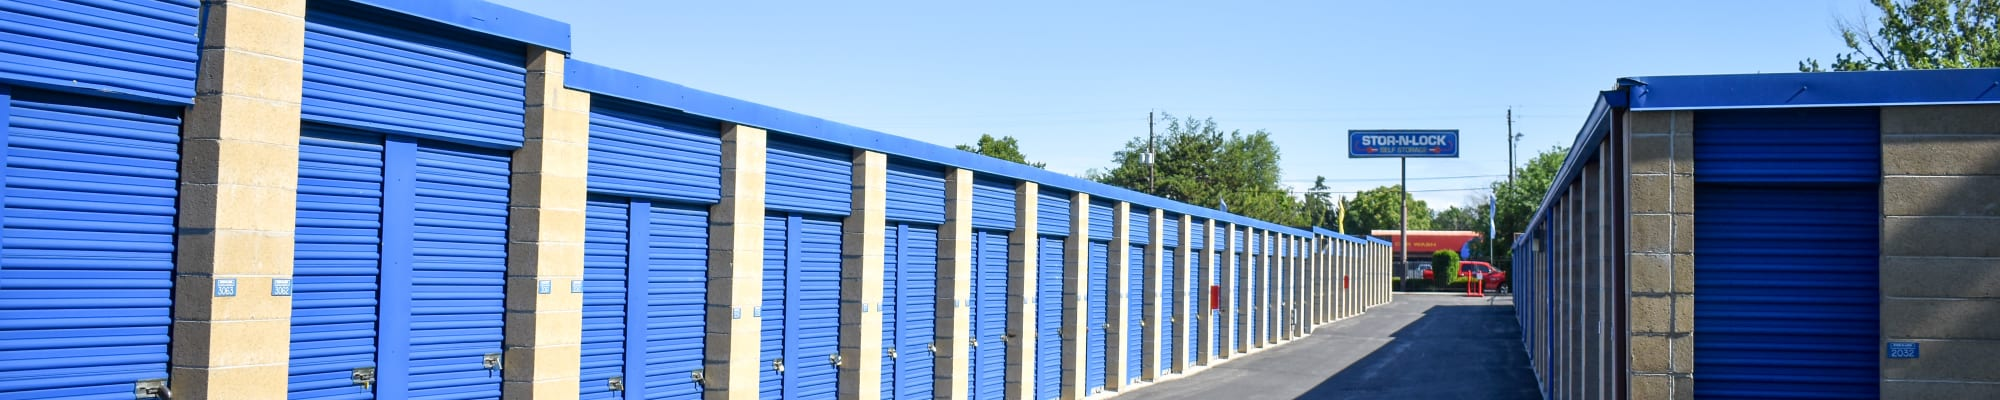 Contact us at STOR-N-LOCK Self Storage in Boise, Idaho